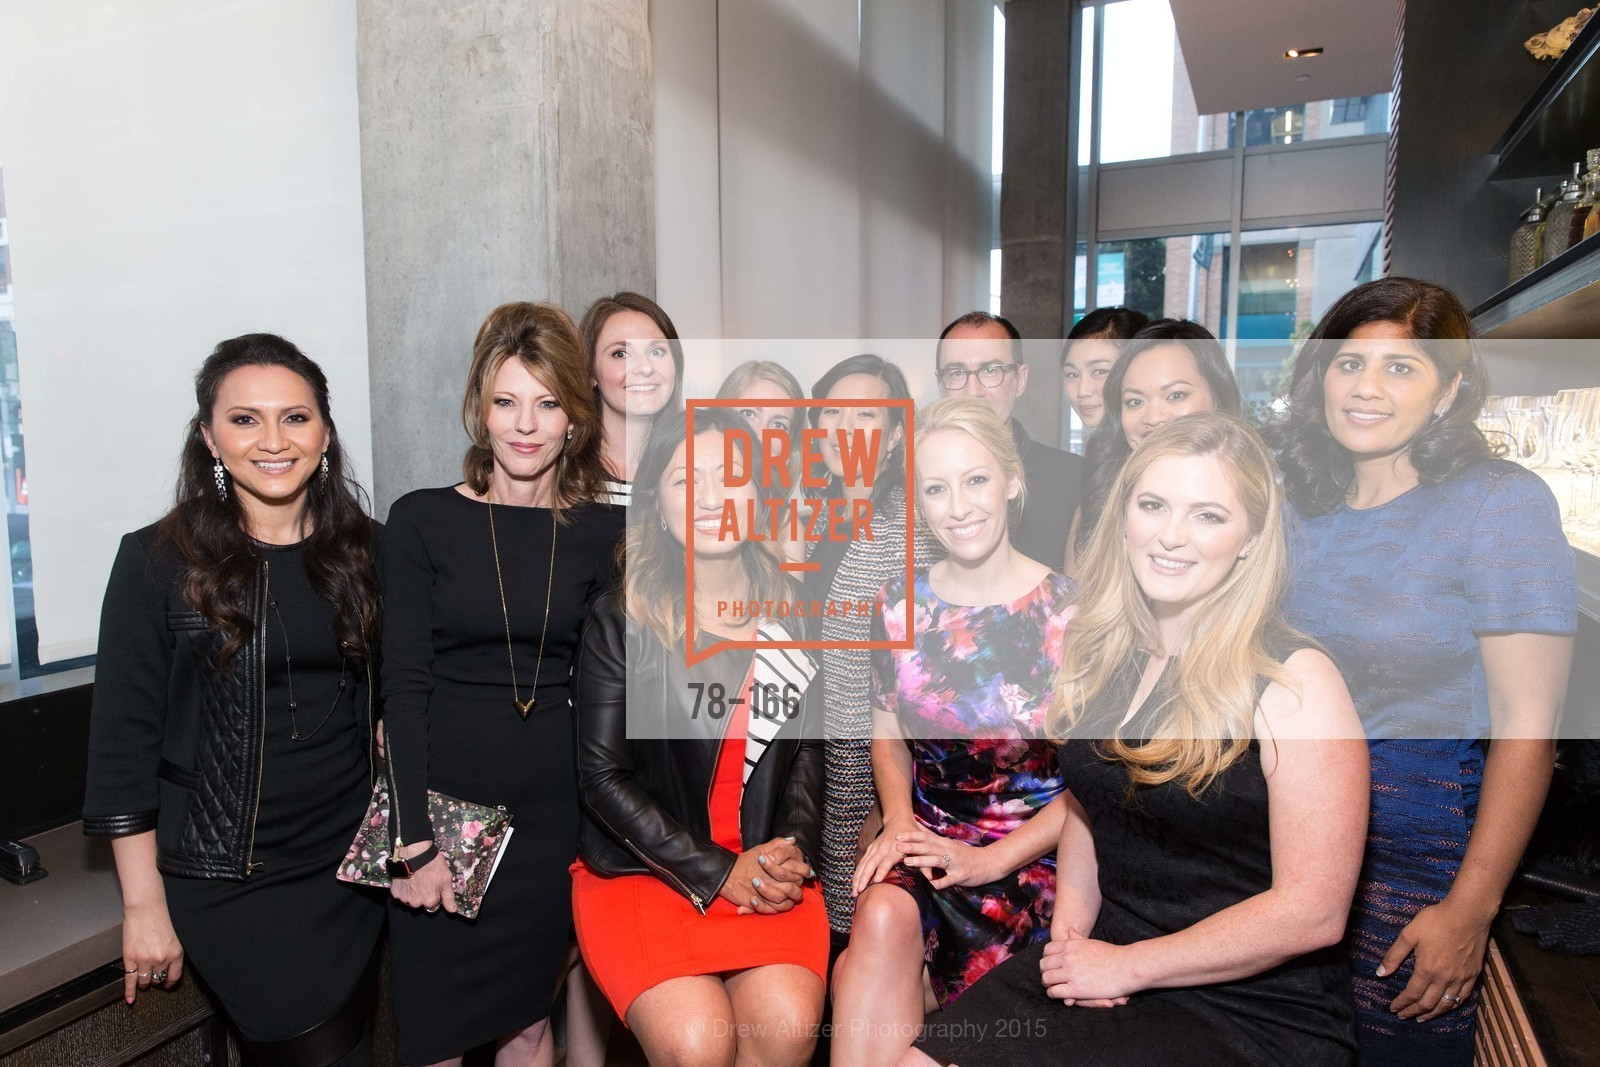 Sarah Haider, Mary Grove, Jane Park, Robbie Myers, Melissa Zatlyn, Selina Tobaccowala, Elizabeth Iorne, Elle Women in Tech, Prospect. 300 Spear Street, June 15th, 2015,Drew Altizer, Drew Altizer Photography, full-service event agency, private events, San Francisco photographer, photographer California